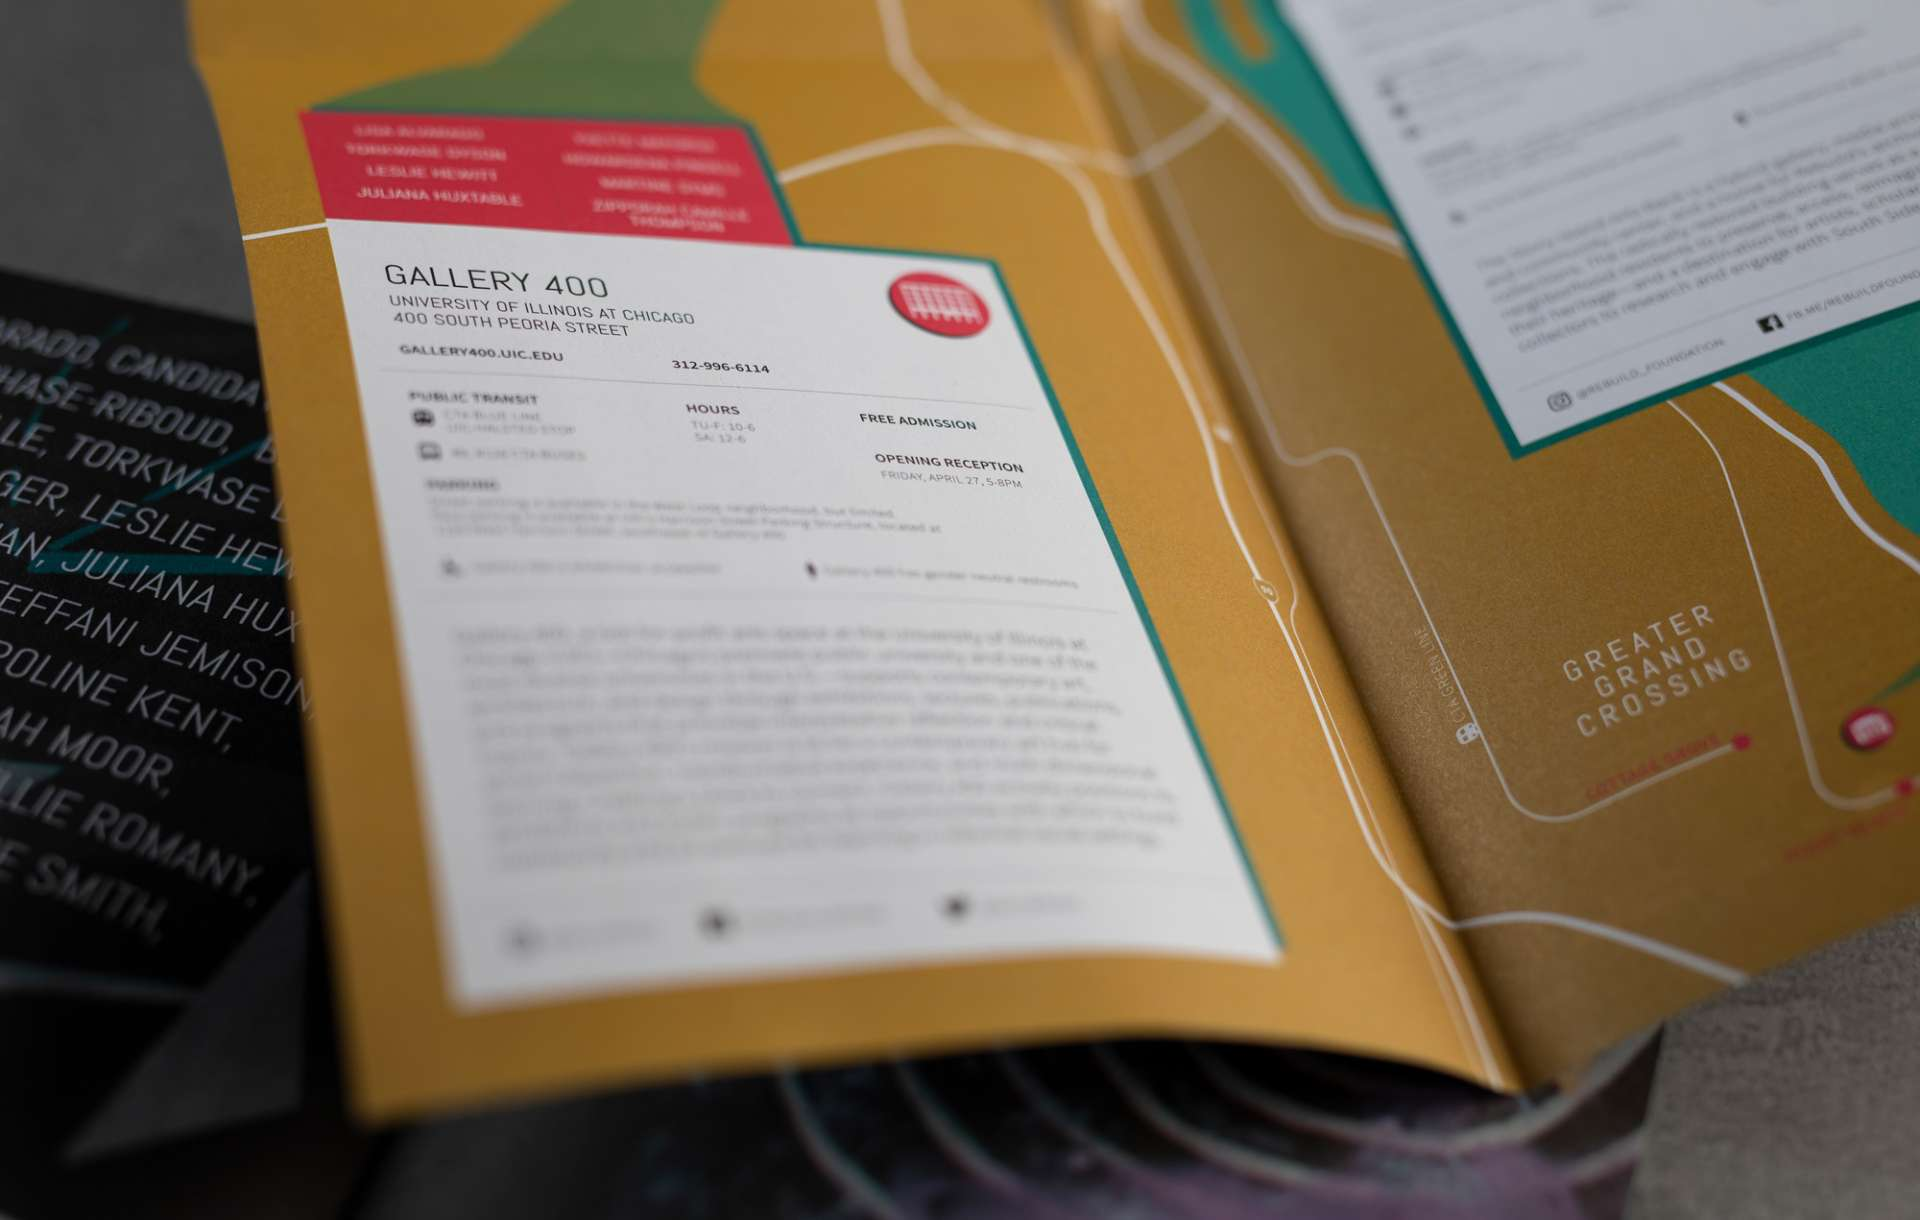 Printed catalogue design for Out of Easy Reach exhibit